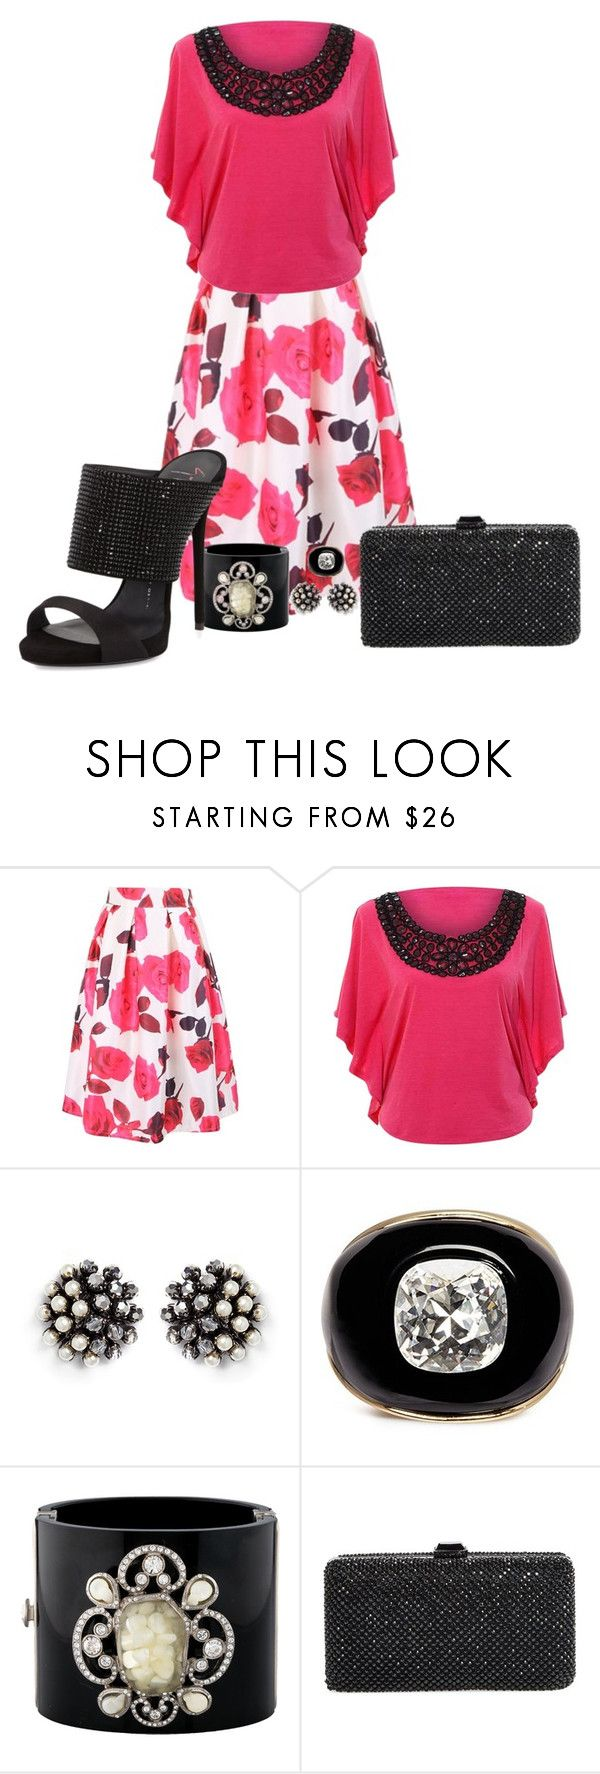 """""""On the Town"""" by angiemine213 ❤ liked on Polyvore featuring WithChic, Miriam Haskell, Kenneth Jay Lane, Chanel, Sondra Roberts and Giuseppe Zanotti"""